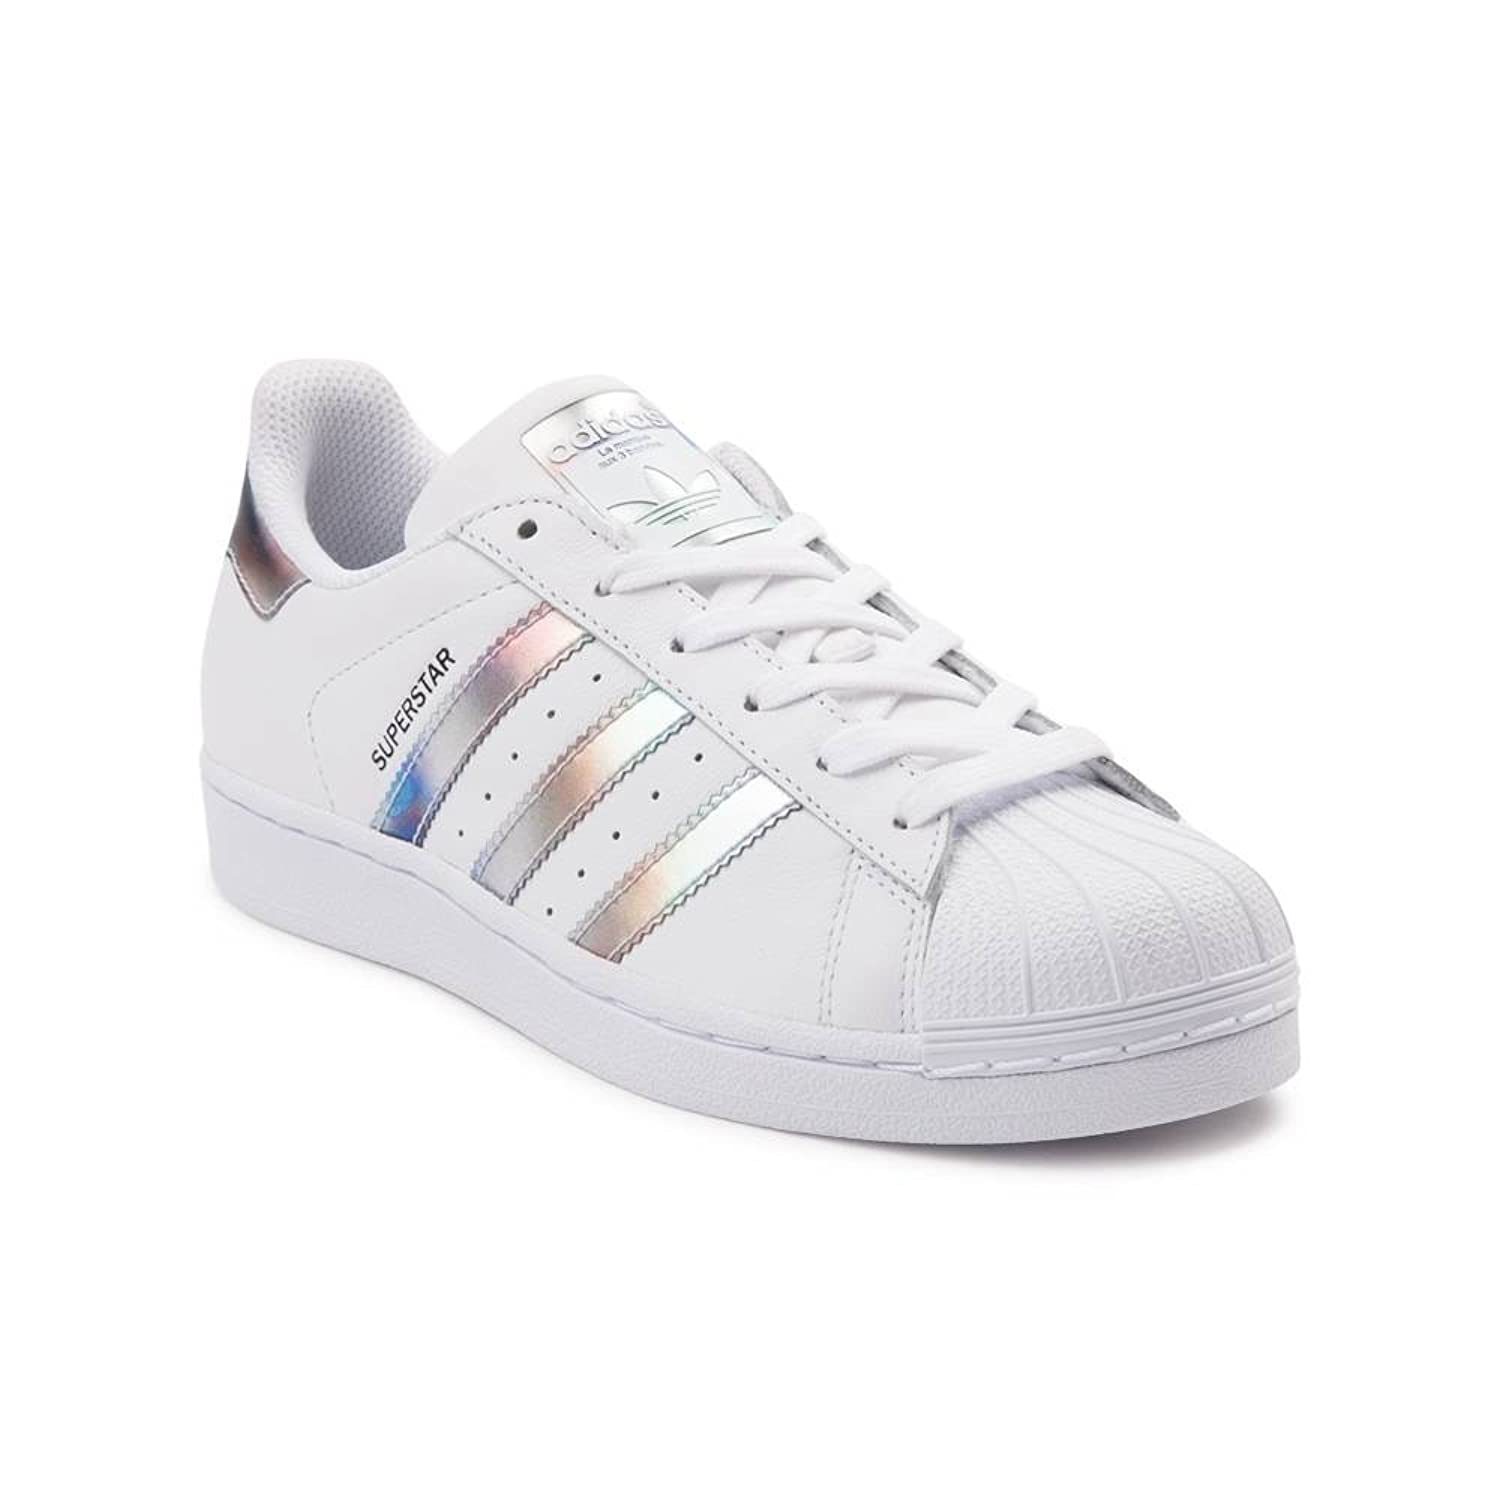 adidas Originals Women's Superstar W Fashion Sneaker (Mens 3/Womens 5, White Metallic 6287)